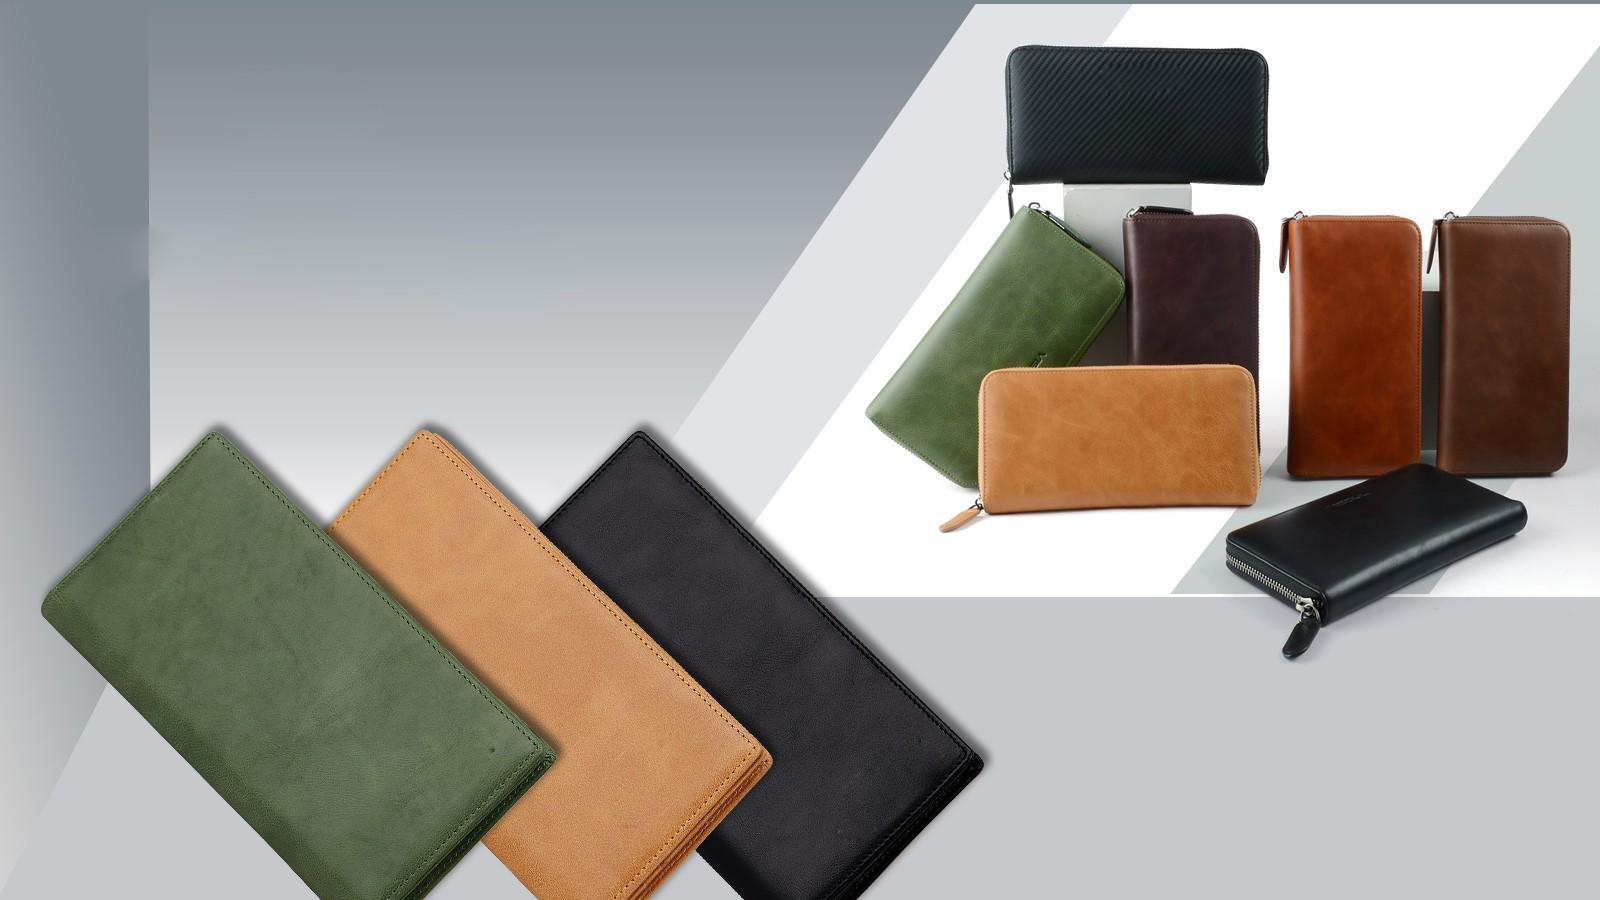 easy carry leather card wallet online for iphone X